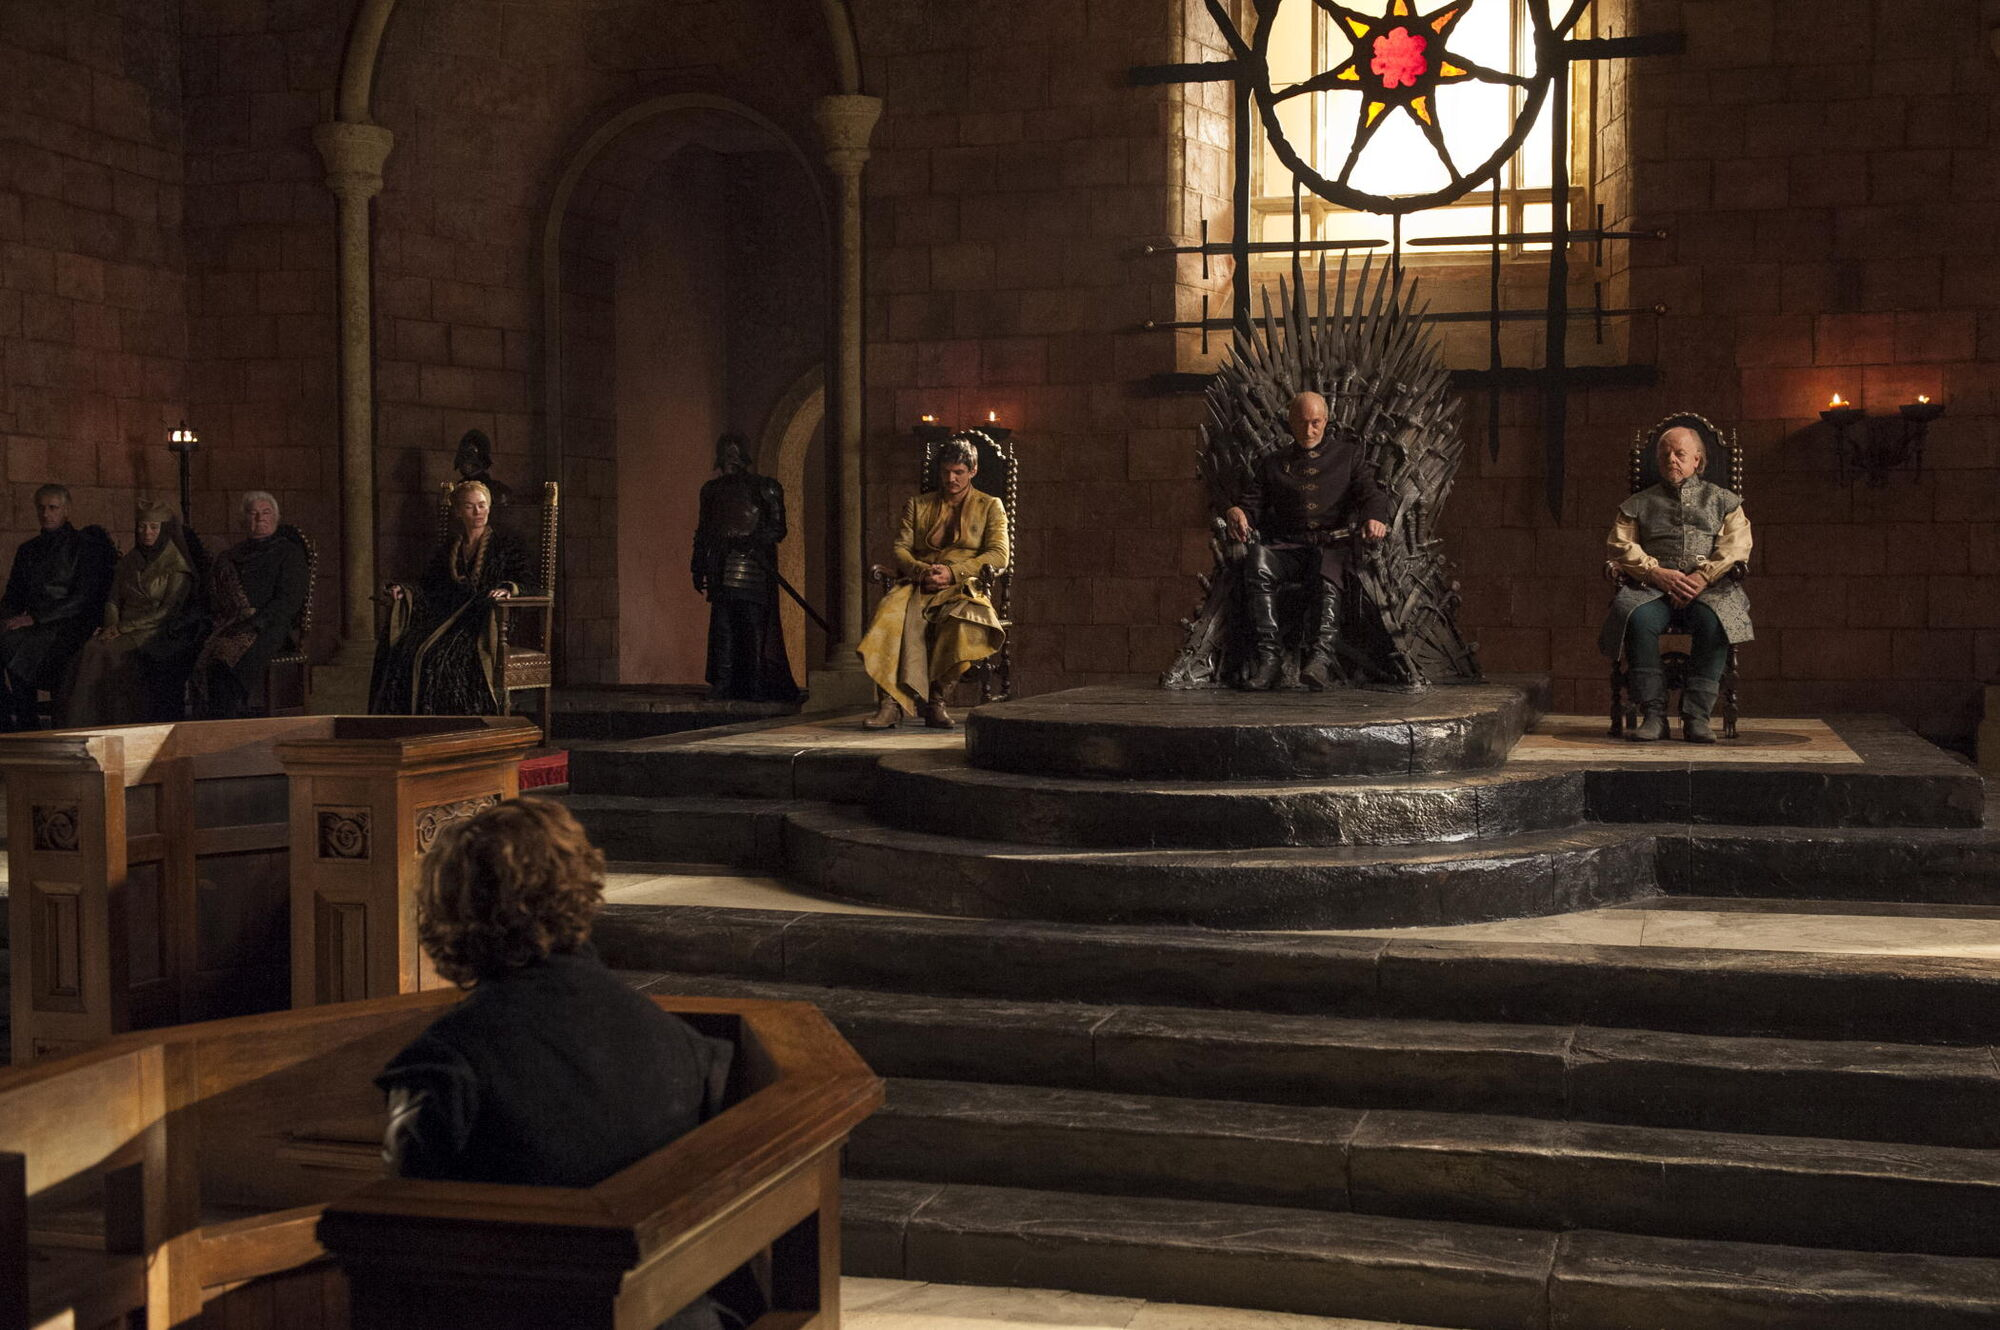 Court trial of Tyrion Lannister | Game of Thrones Wiki | FANDOM